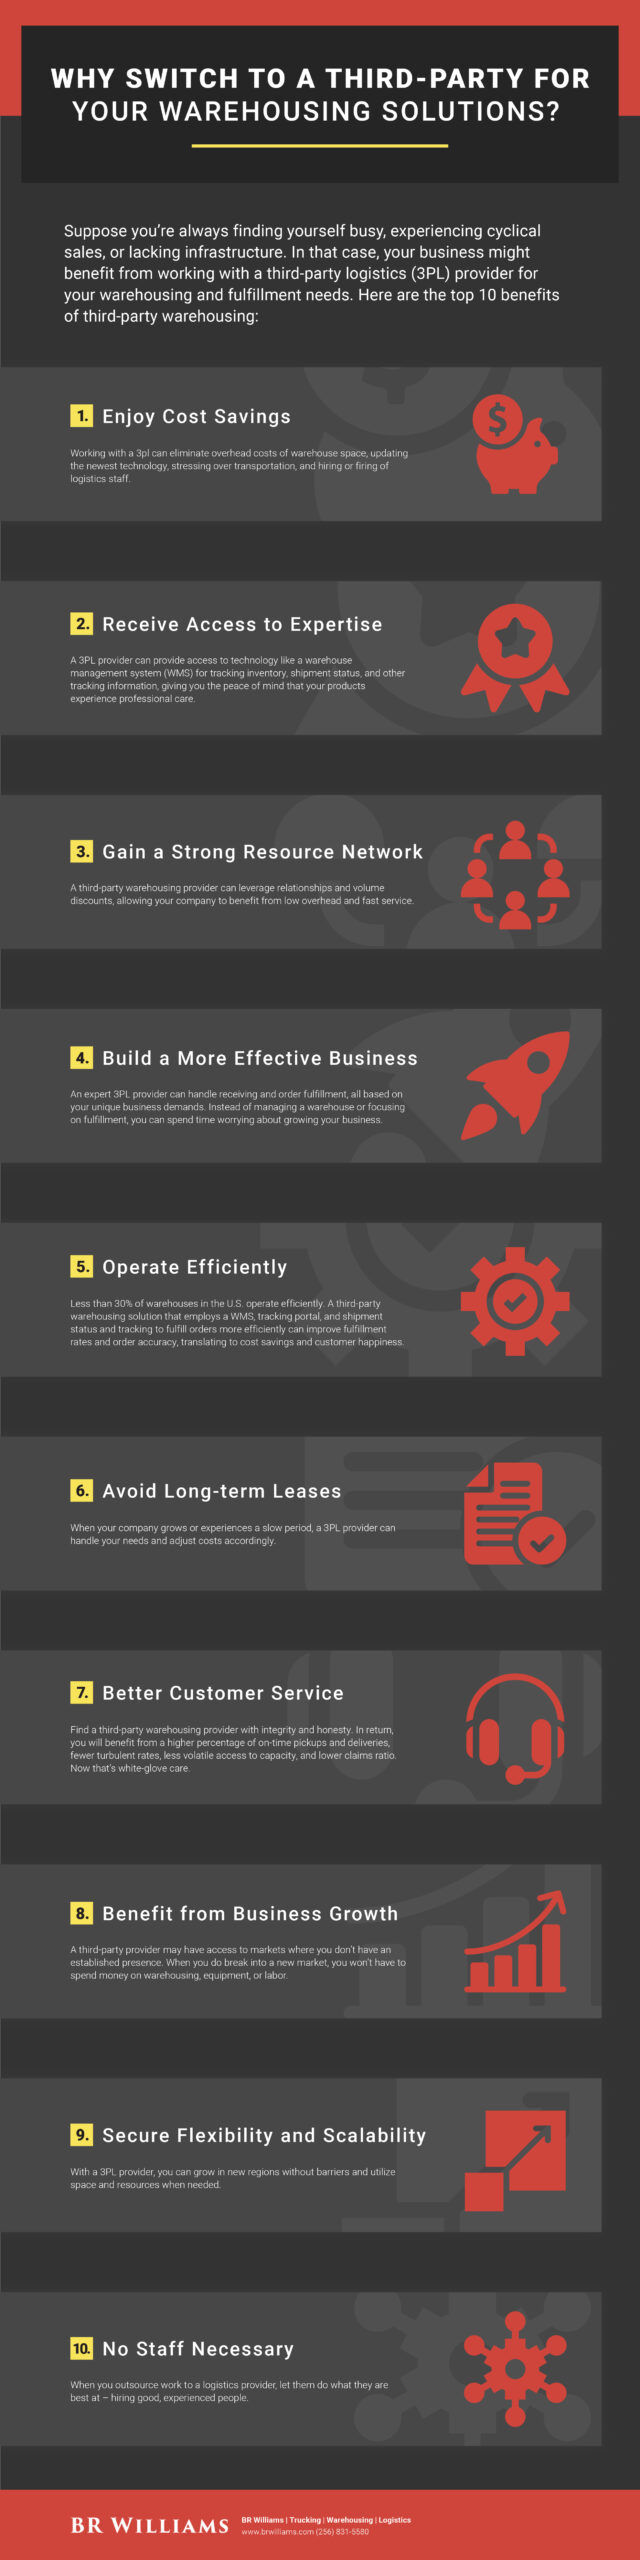 Top 10 Benefits of Third-Party Warehousing Solutions Infographic